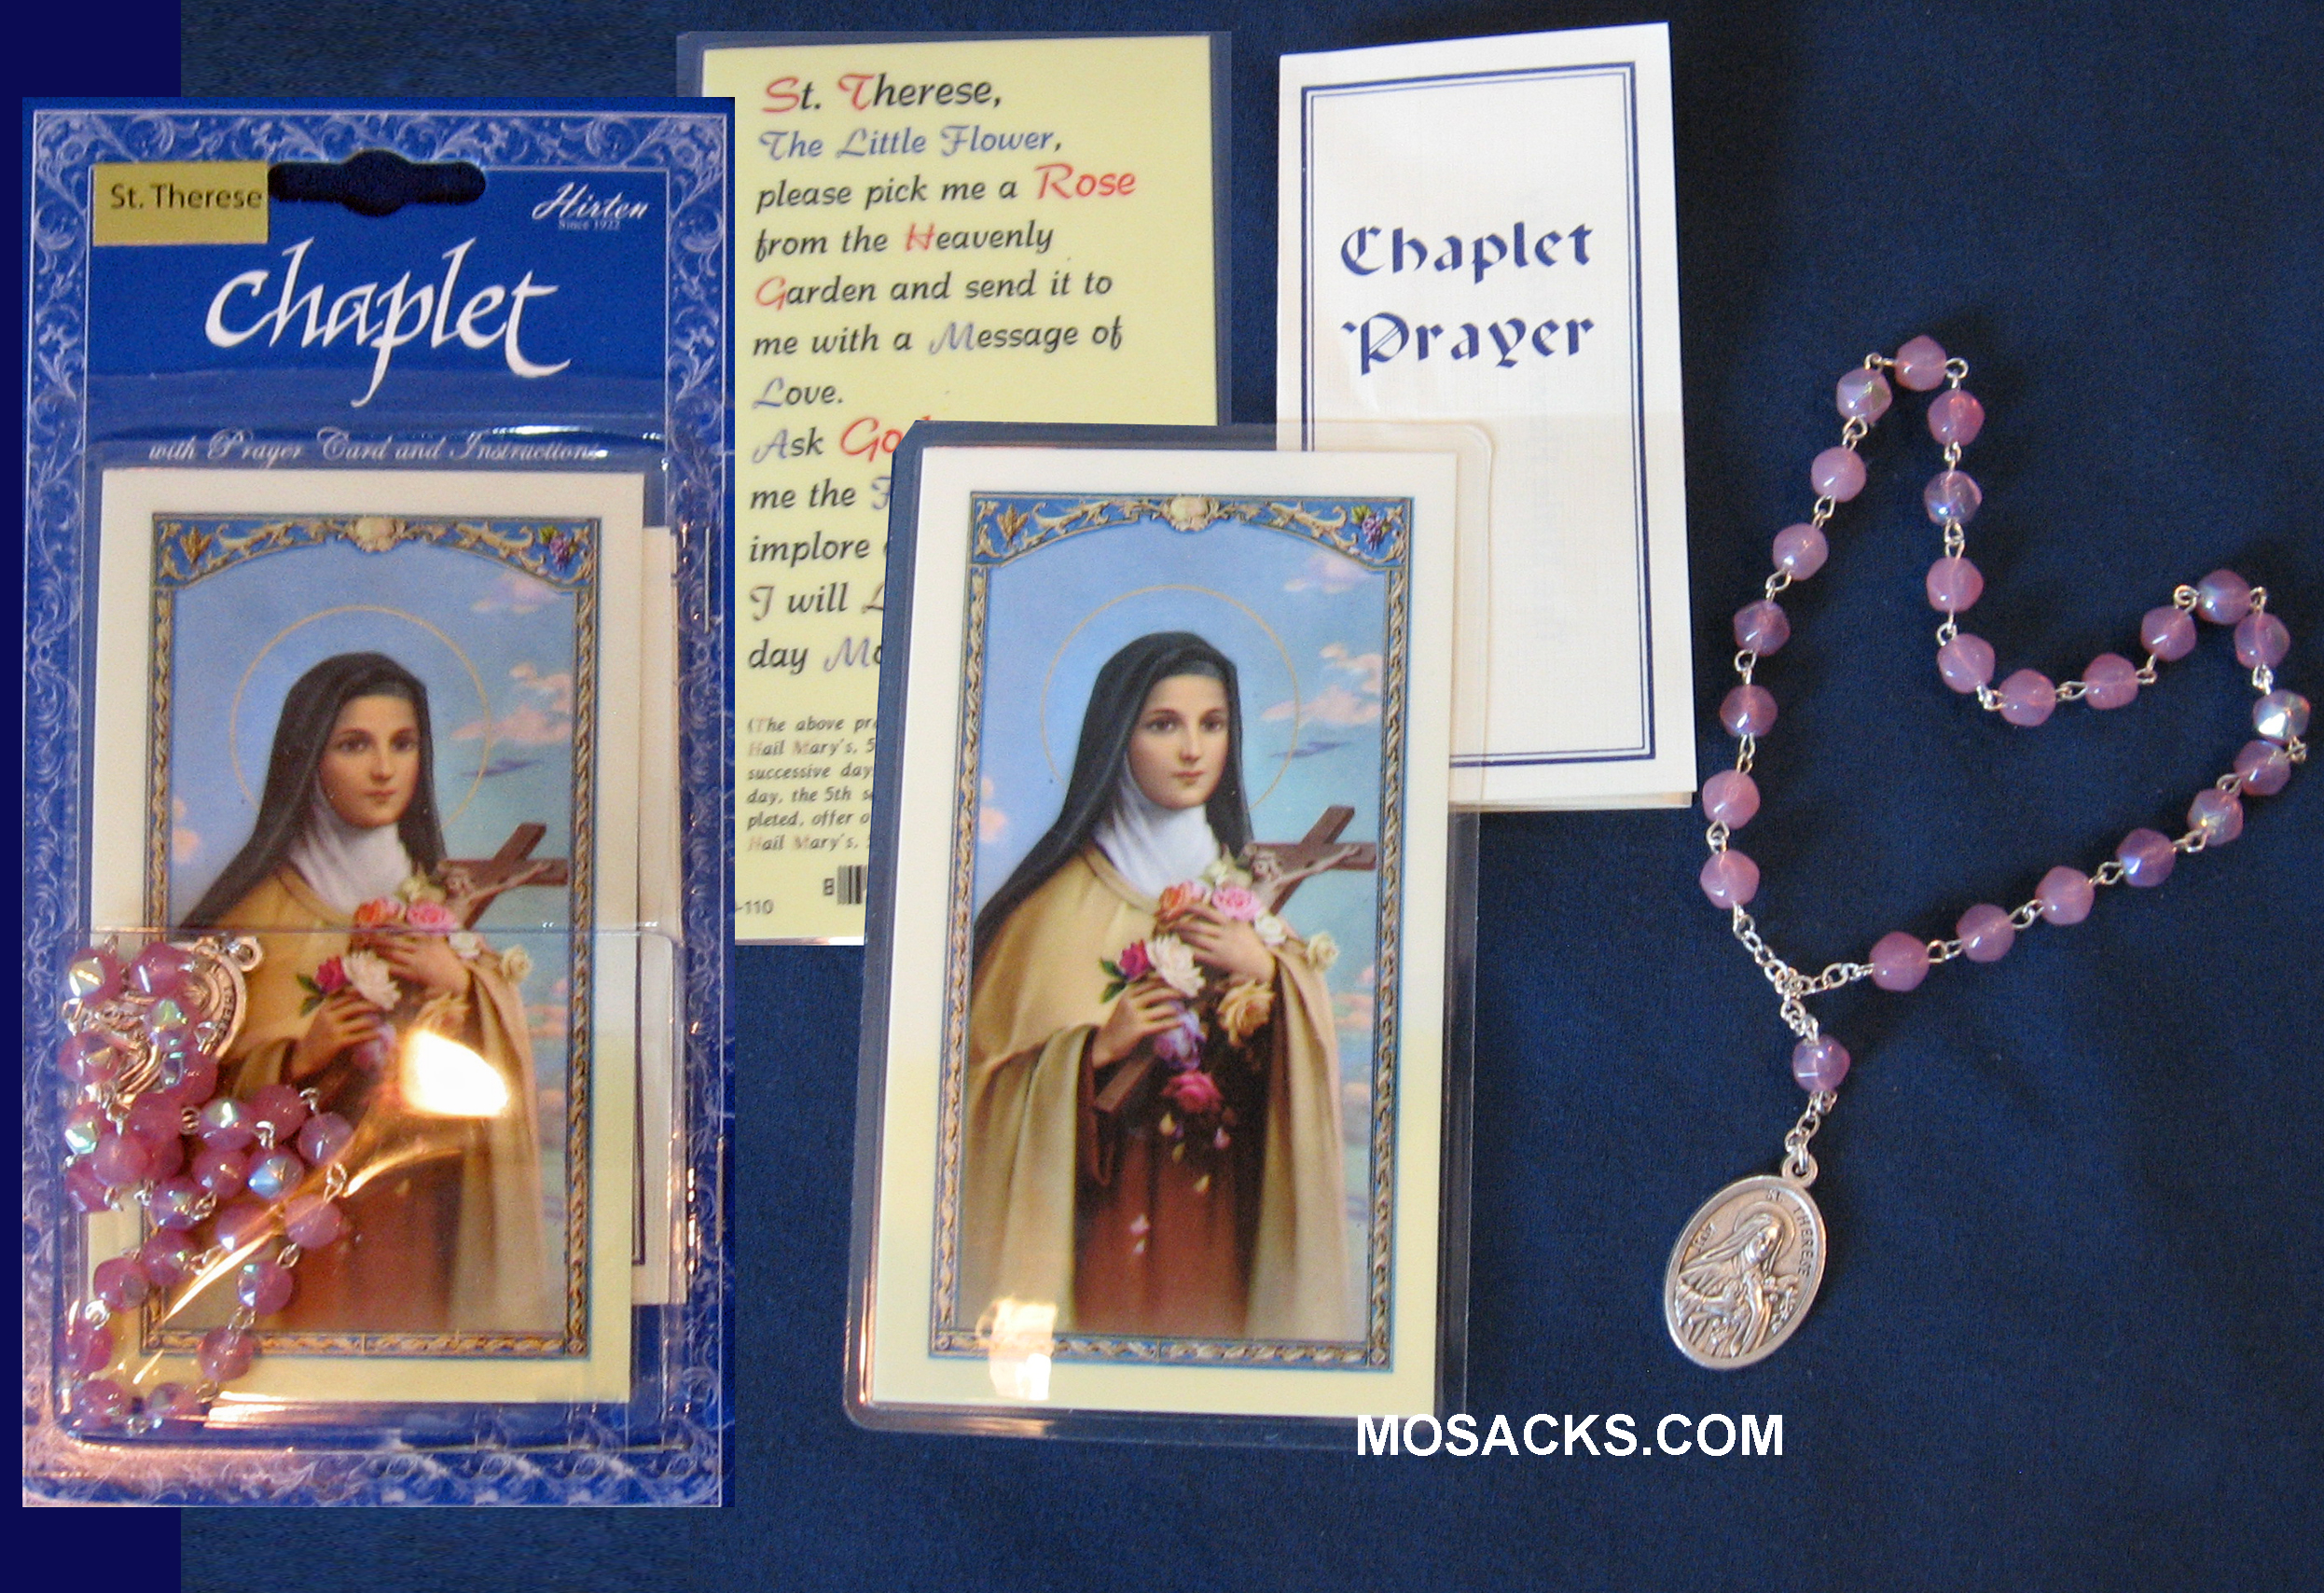 St. Theresa Chaplet and Prayer Card, 094